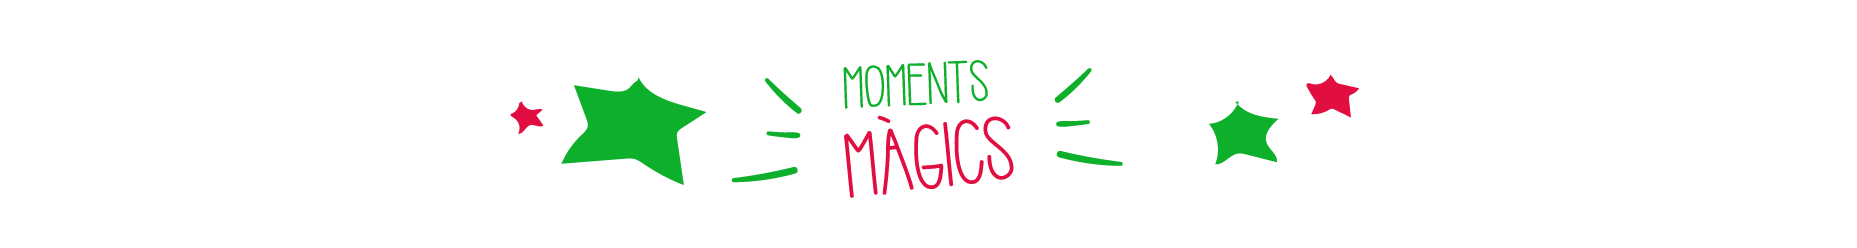 moments-magics